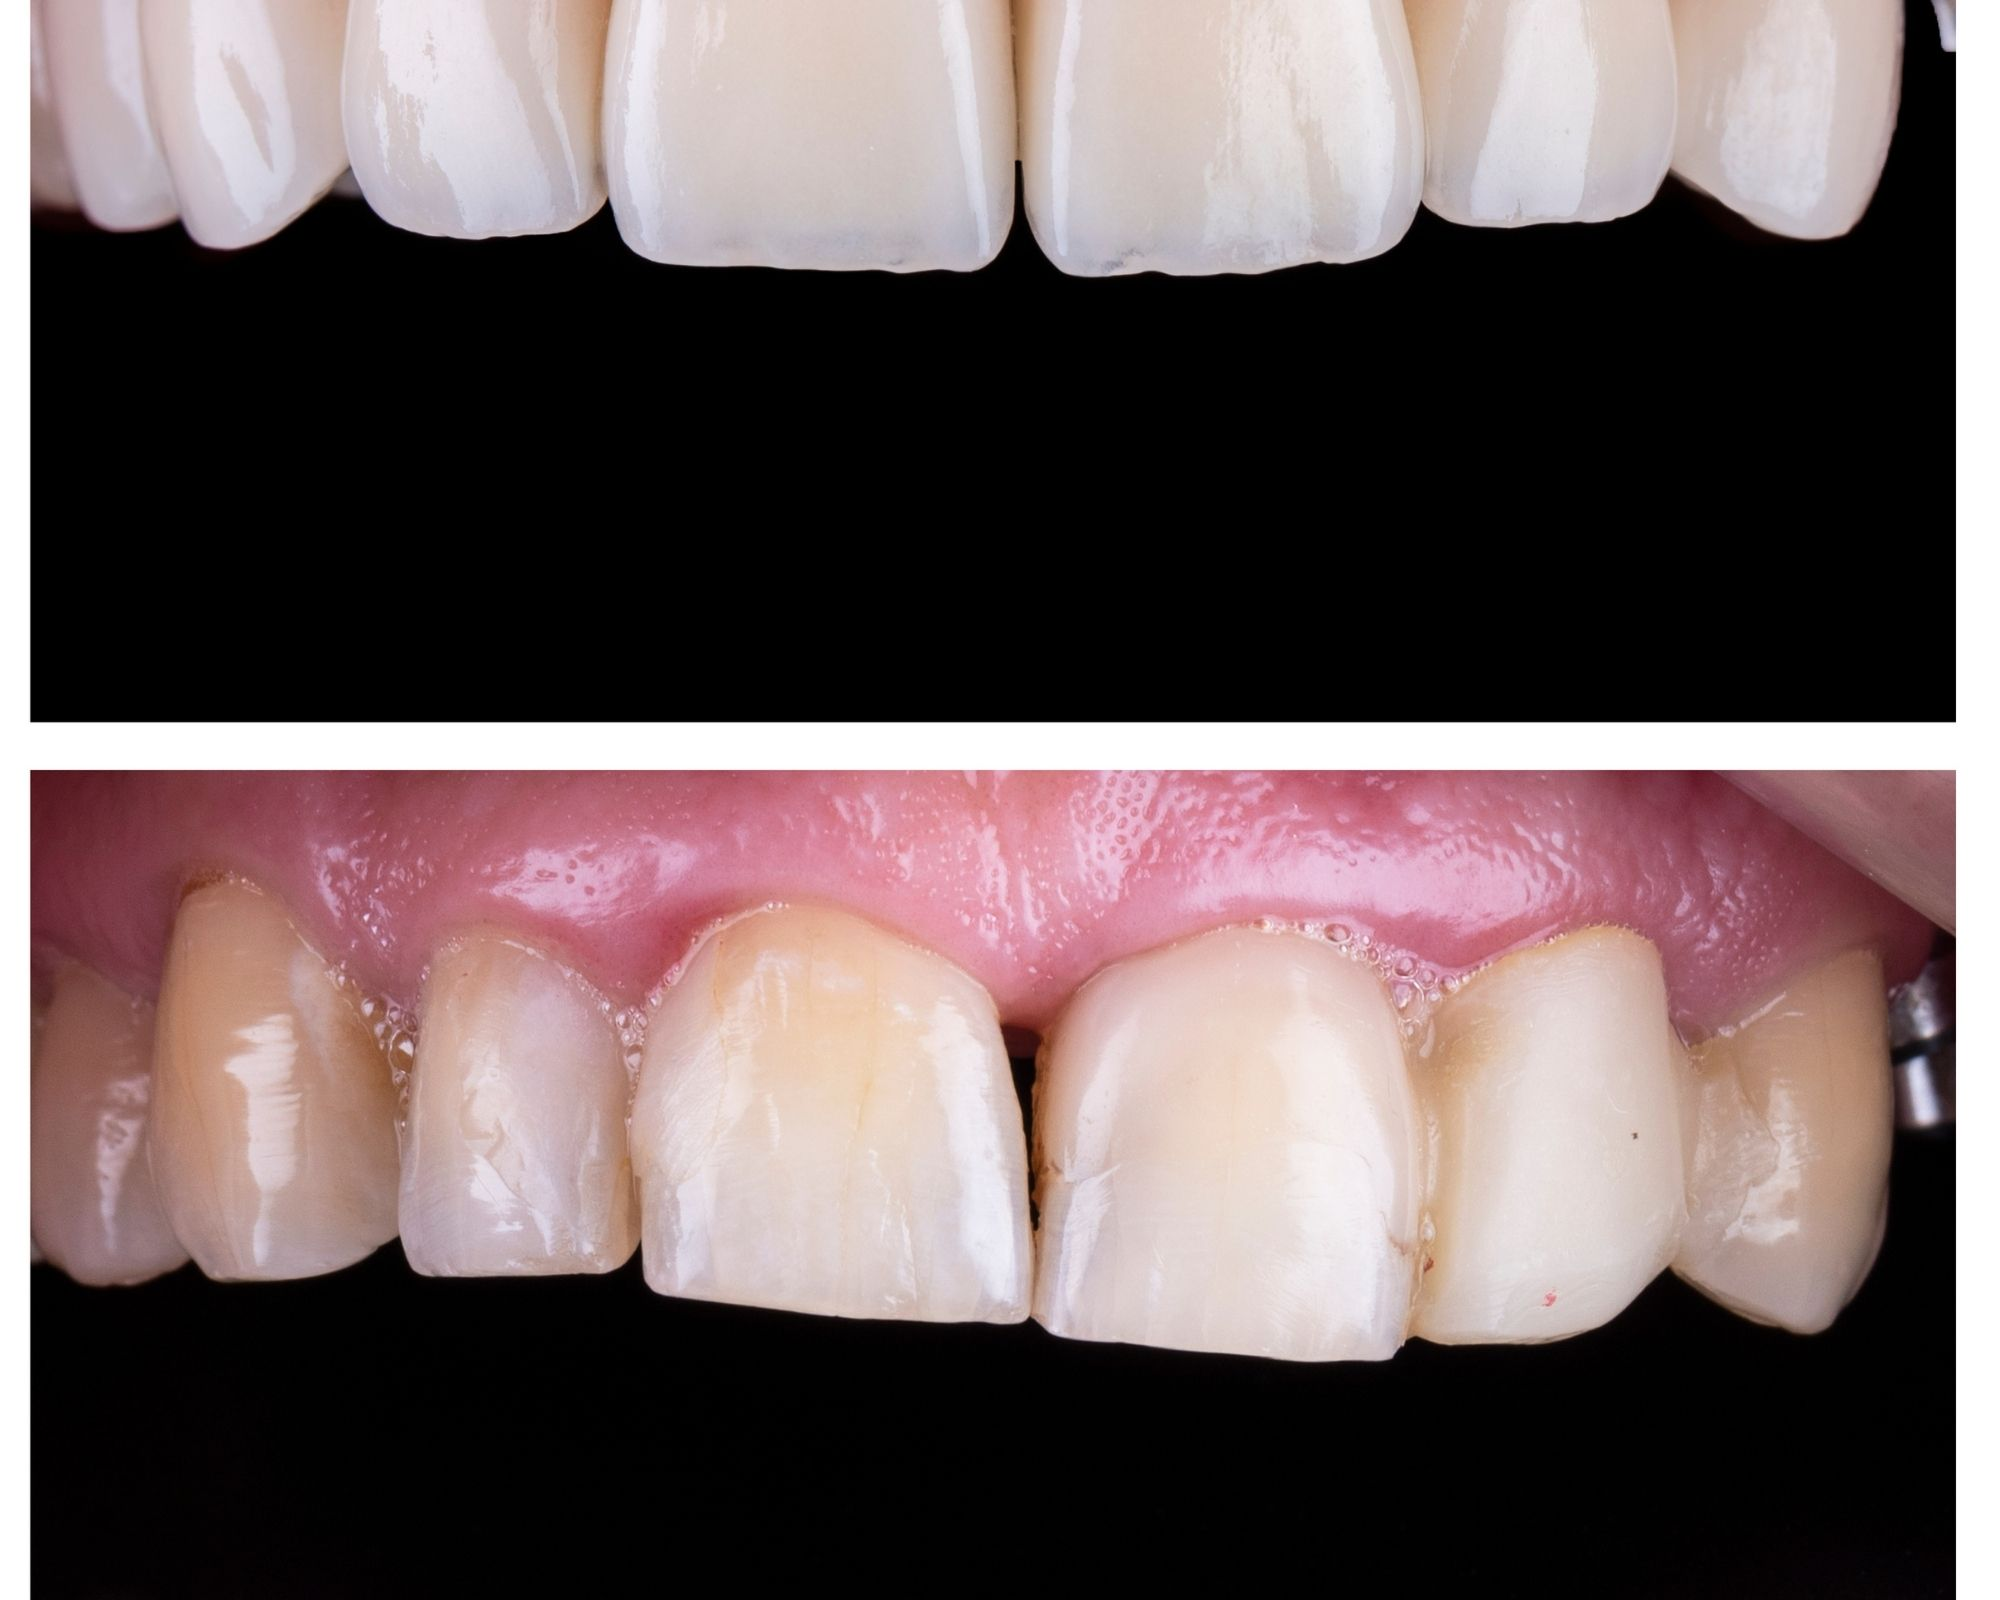 5 Great Tips to Look After Your Porcelain Veneers to Keep it Clean